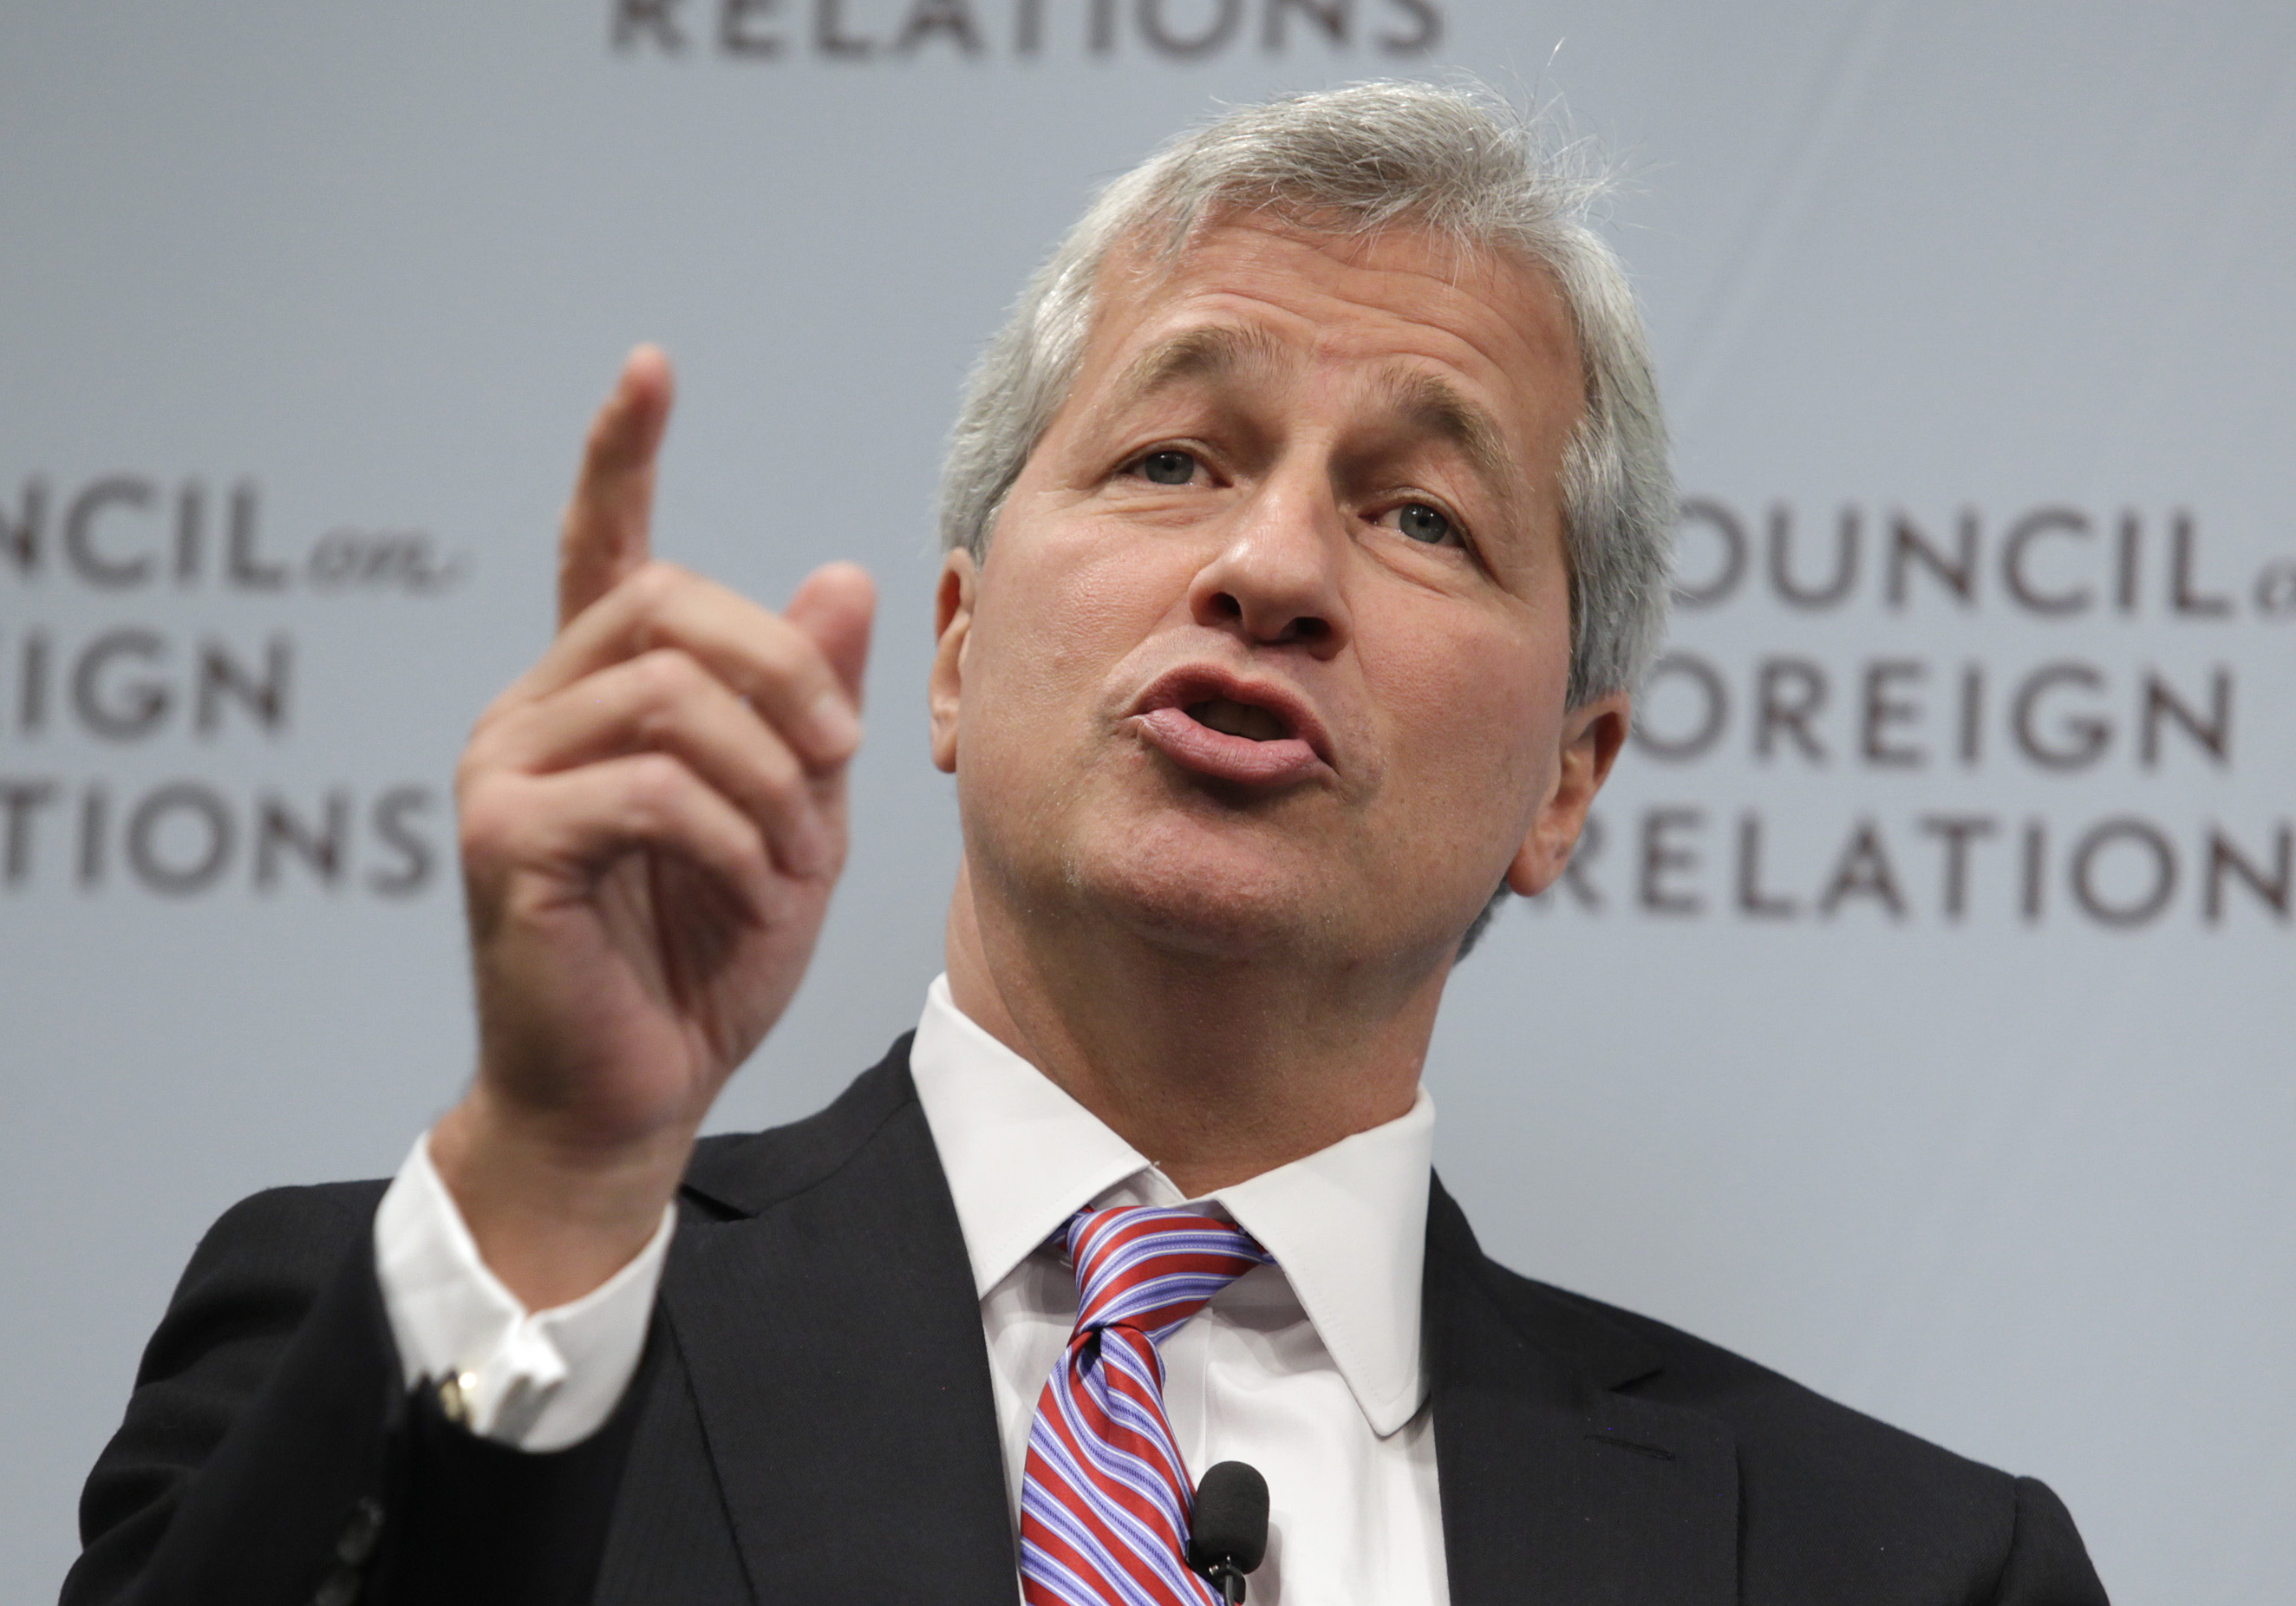 JPMorgan delivers record revenue on strength of US consumer